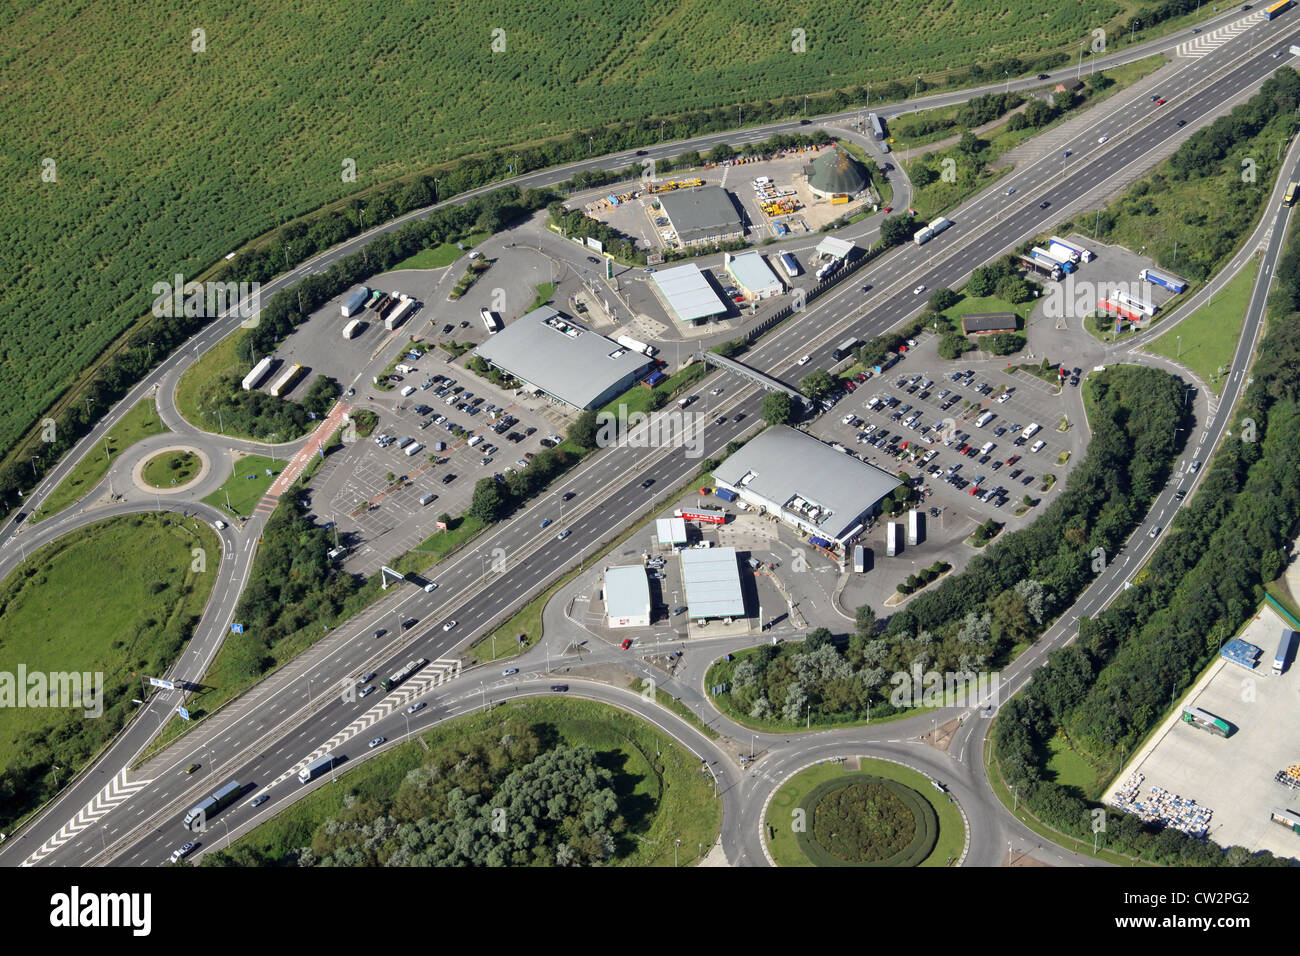 aerial view of J15a M1 / A43 Northampton Motorway Services - Stock Image